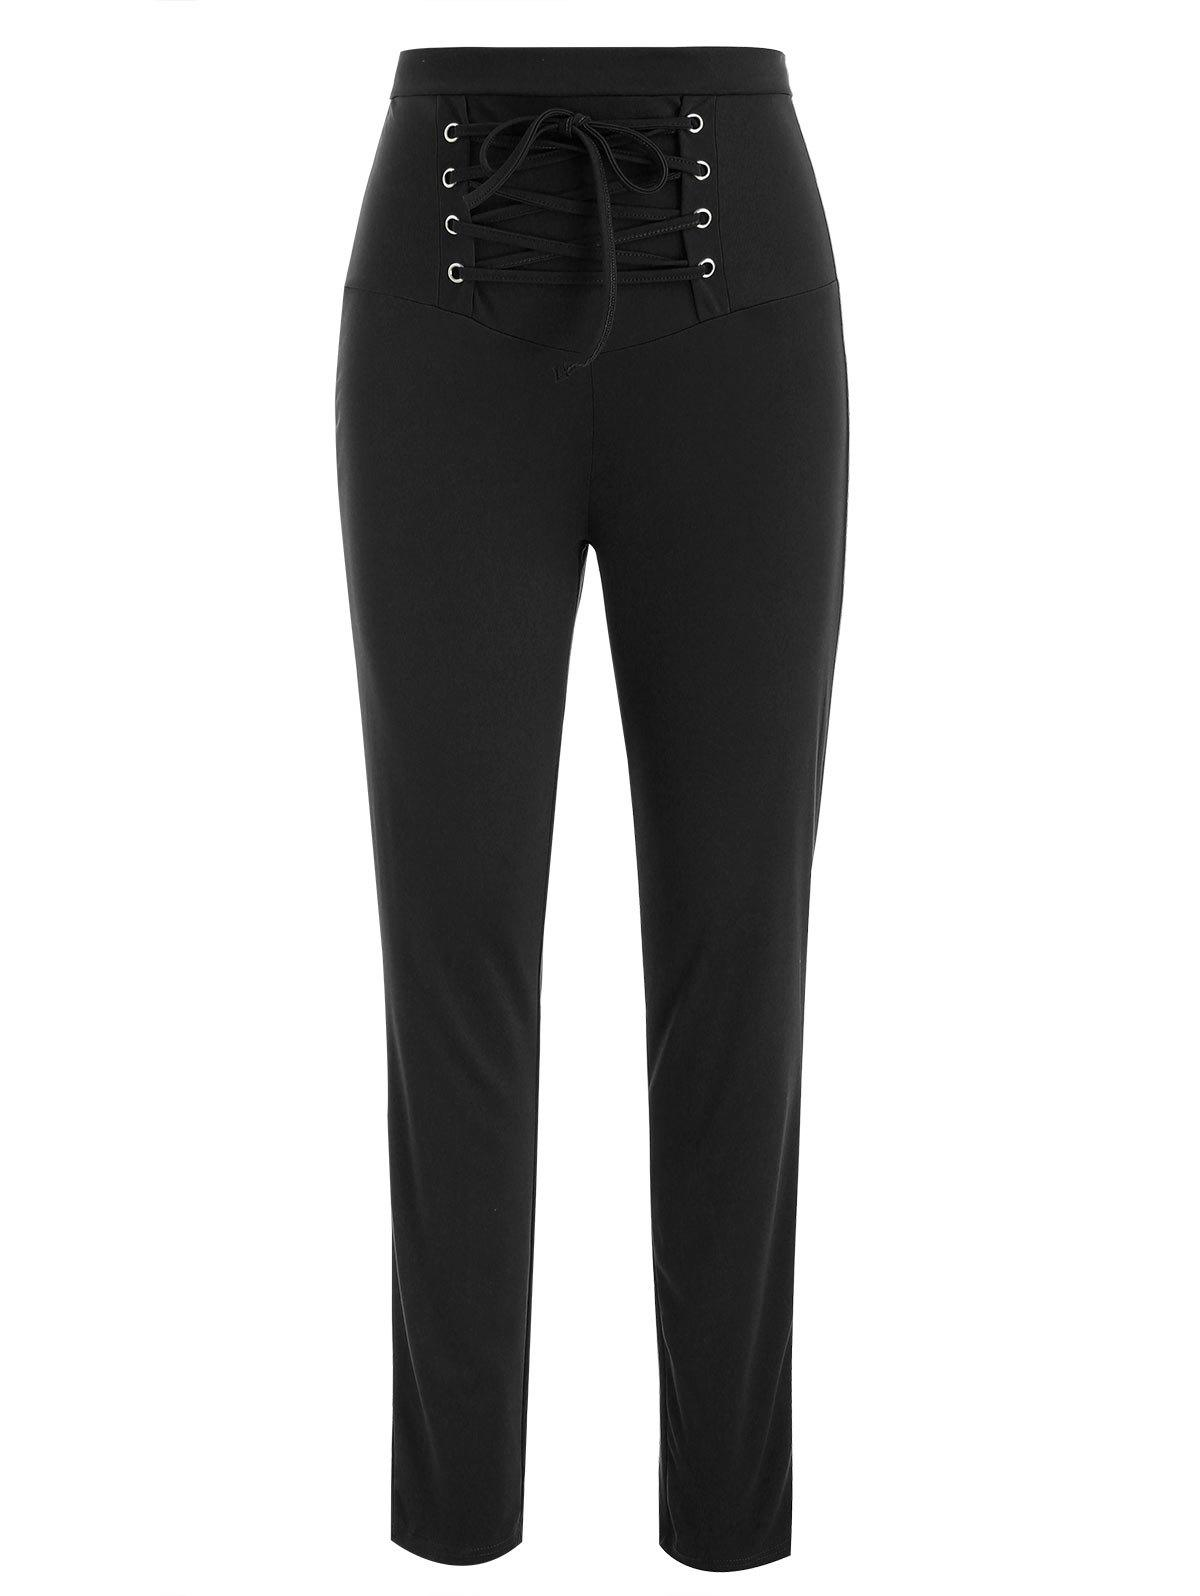 Affordable Lace Up High Waisted Pants